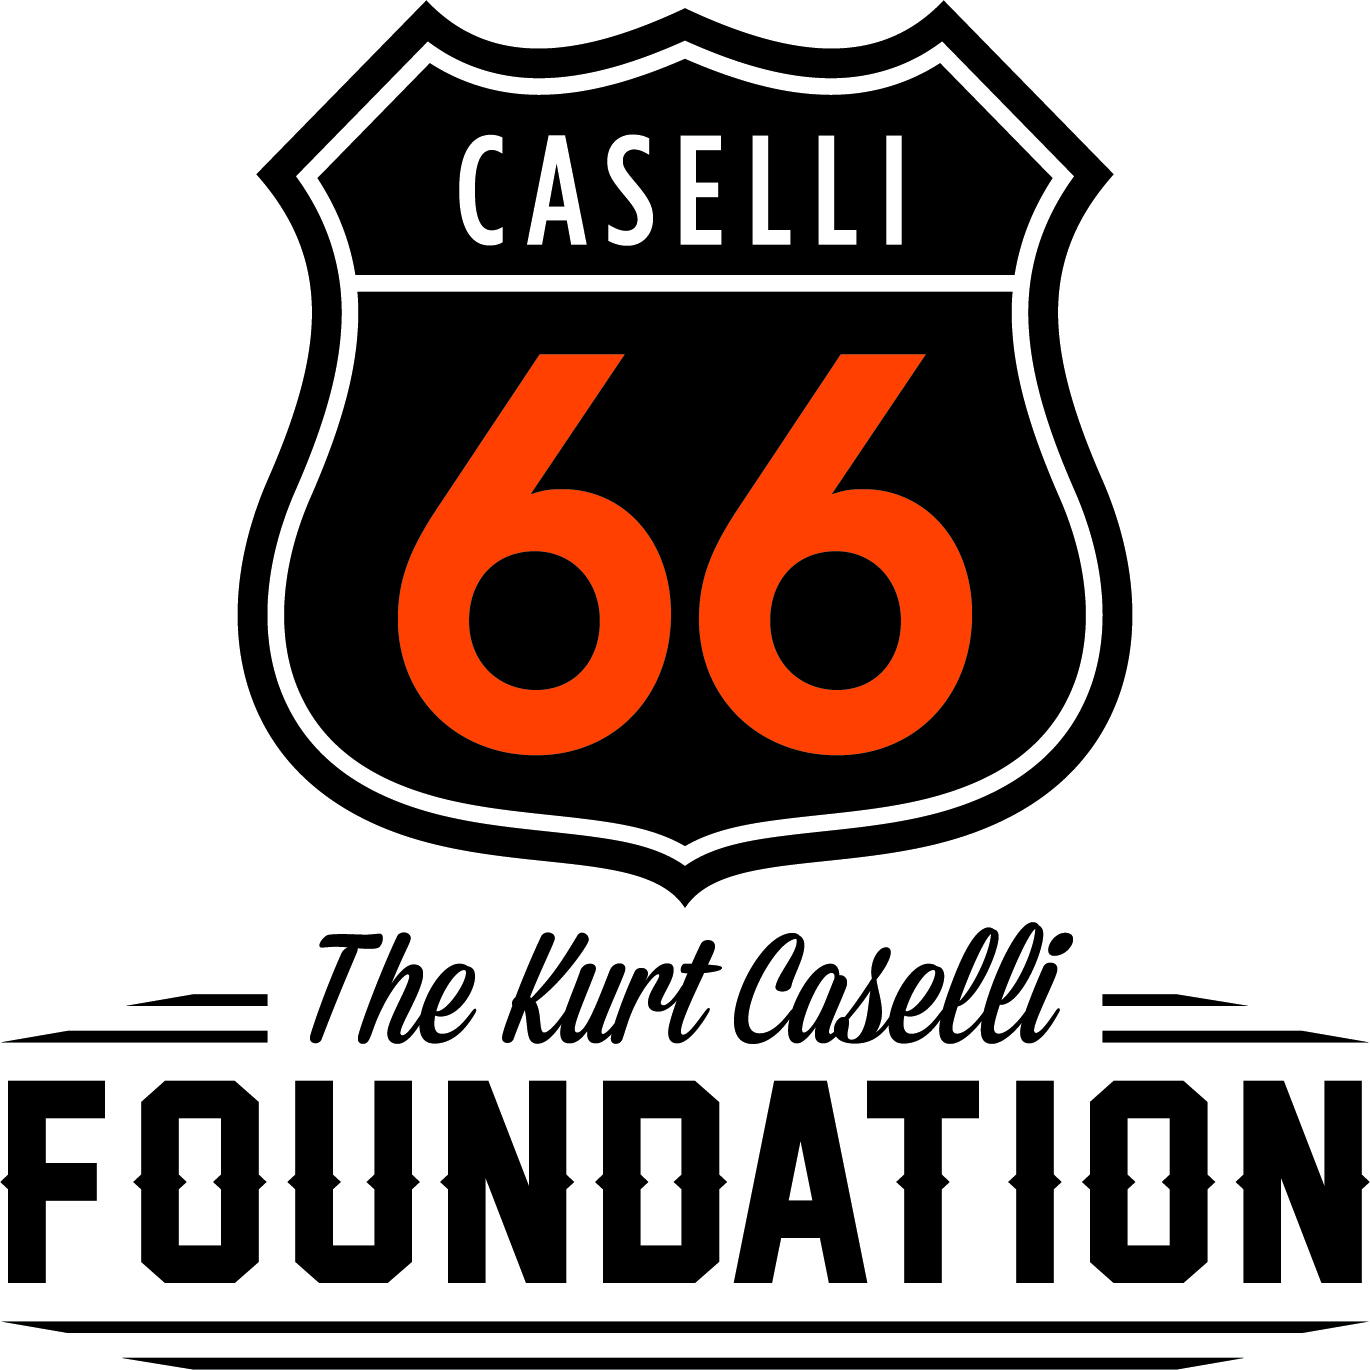 CASELLI_FOUNDATION_FINAL.jpg